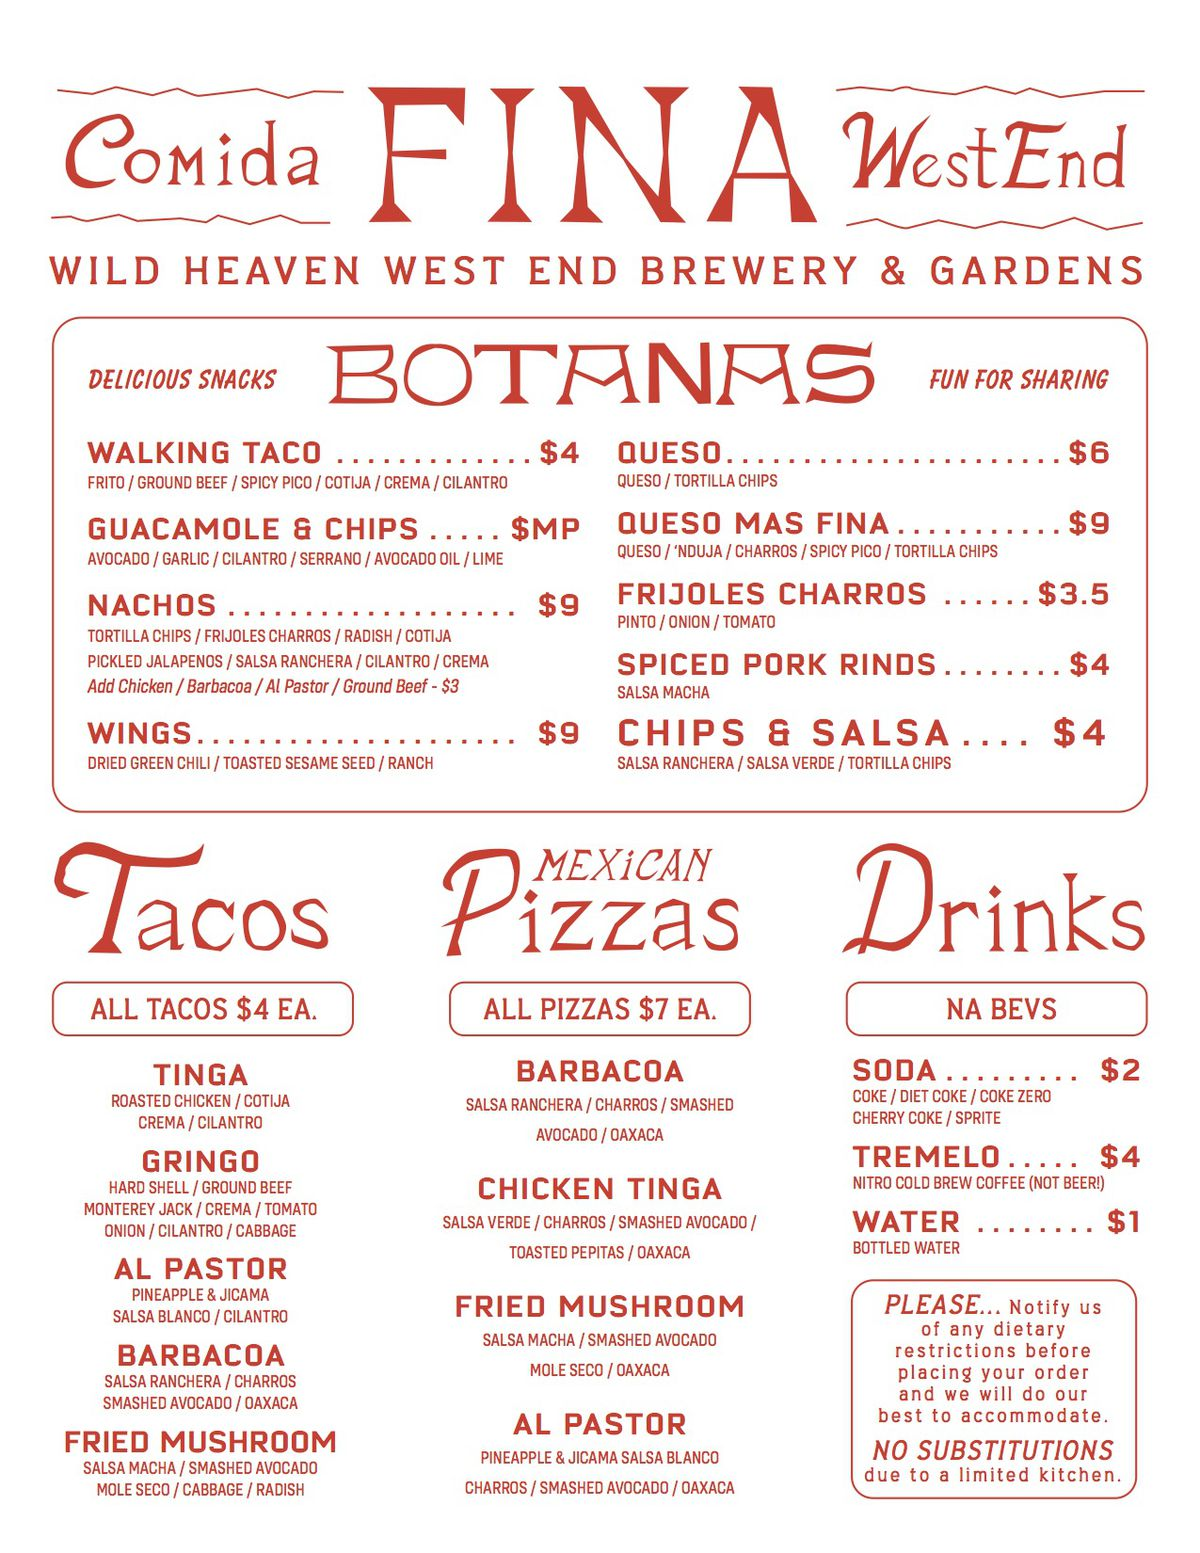 The menu for Fina at Wild Heaven brewery in West End, Atlanta